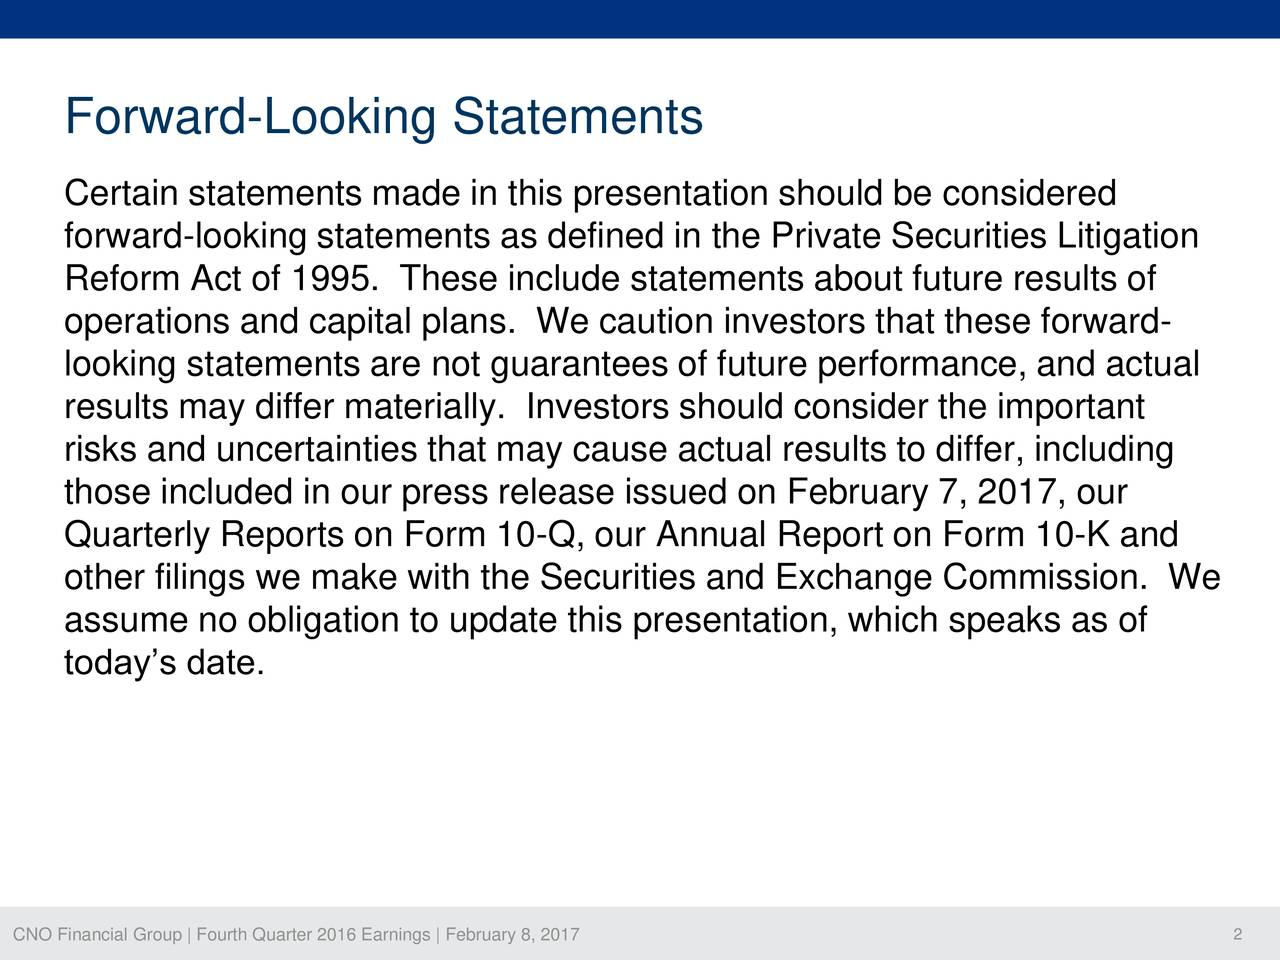 Certain statements made in this presentation should be considered forward-looking statements as defined in the Private Securities Litigation Reform Act of 1995. These include statements about future results of operations and capital plans. We caution investors that these forward- looking statements are not guarantees of future performance, and actual results may differ materially. Investors should consider the important risks and uncertainties that may cause actual results to differ, including those included in our press release issued on February 7, 2017, our Quarterly Reports on Form 10-Q, our Annual Report on Form 10-K and other filings we make with the Securities and Exchange Commission. We assume no obligation to update this presentation, which speaks as of todays date. CNO Financial Group | Fourth Quarter 2016 Earnings | February 8, 2017 2